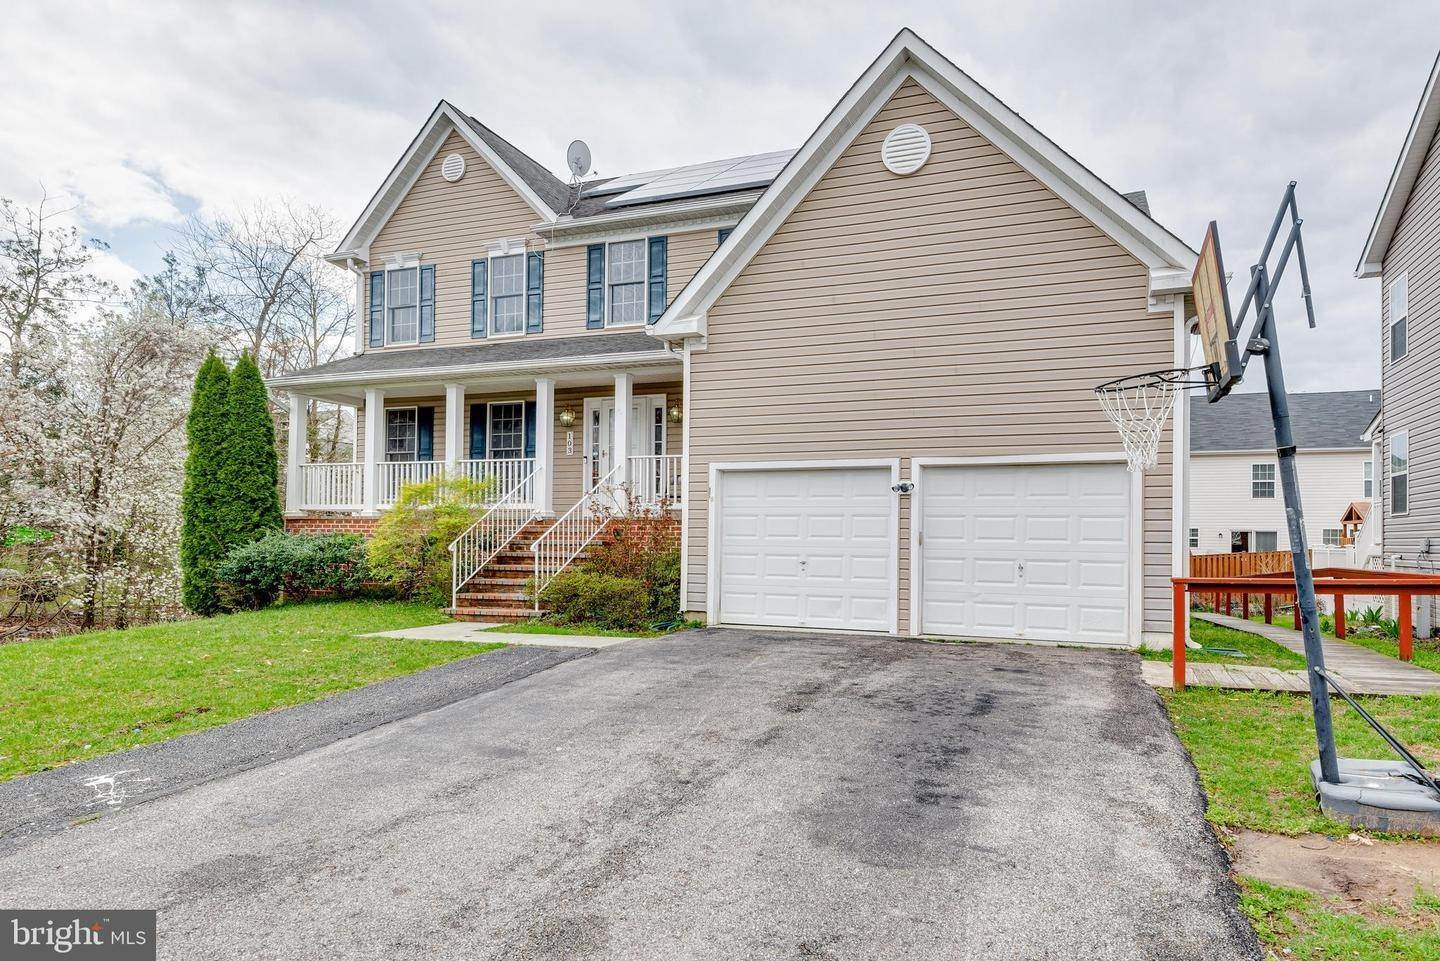 4. Single Family Homes alle Severna Park, Maryland, 21146 Stati Uniti